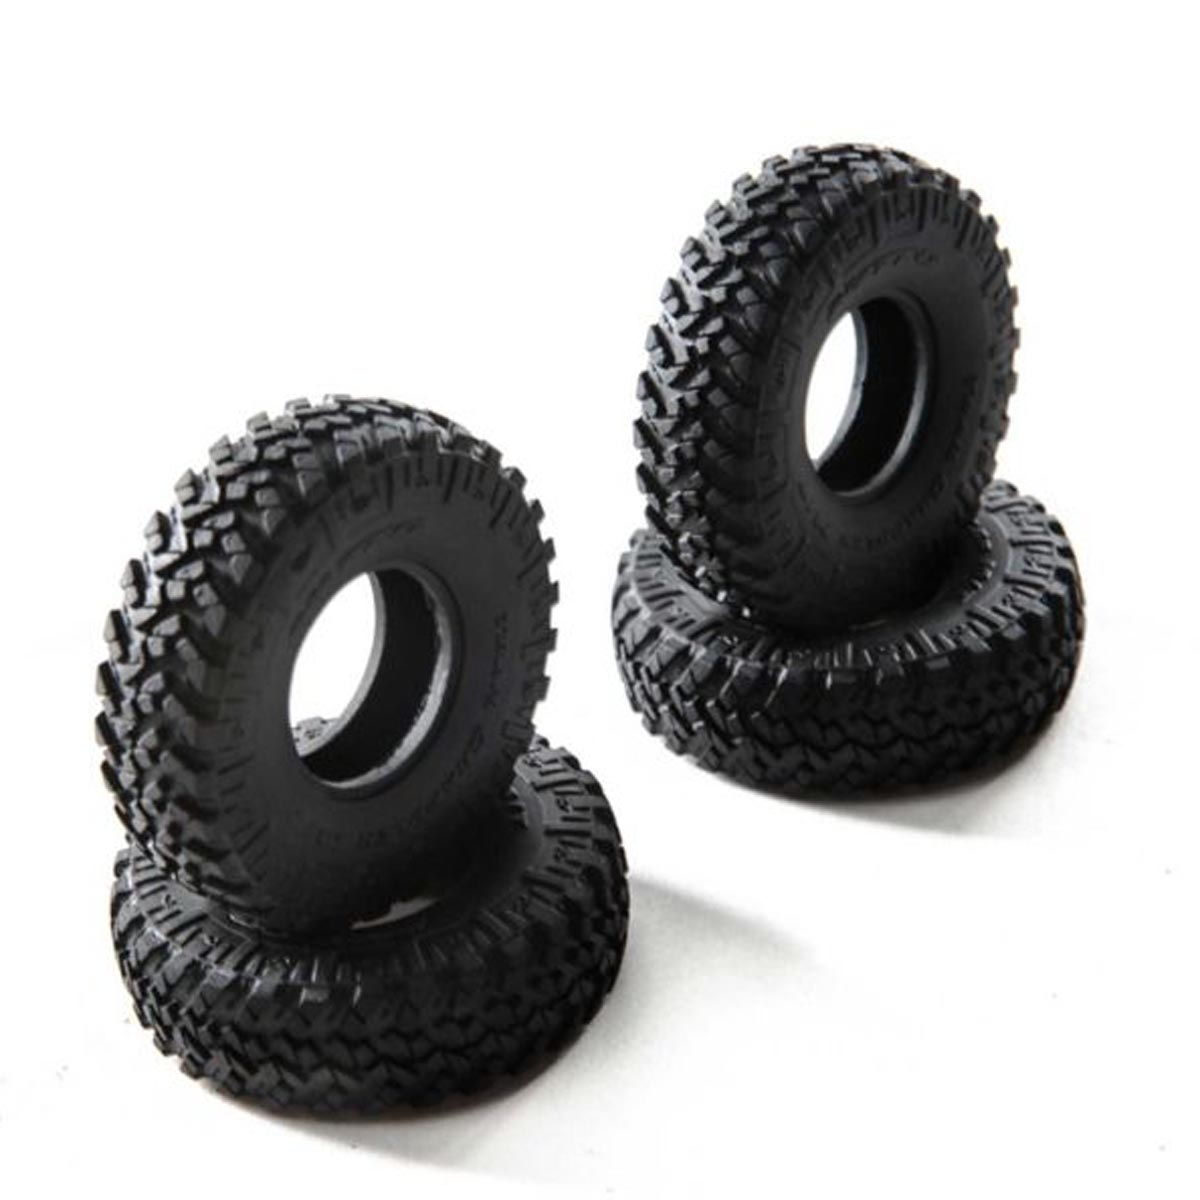 Axial 1 0 Nitto Trail Grappler, Monster Truck Tires (4pcs)